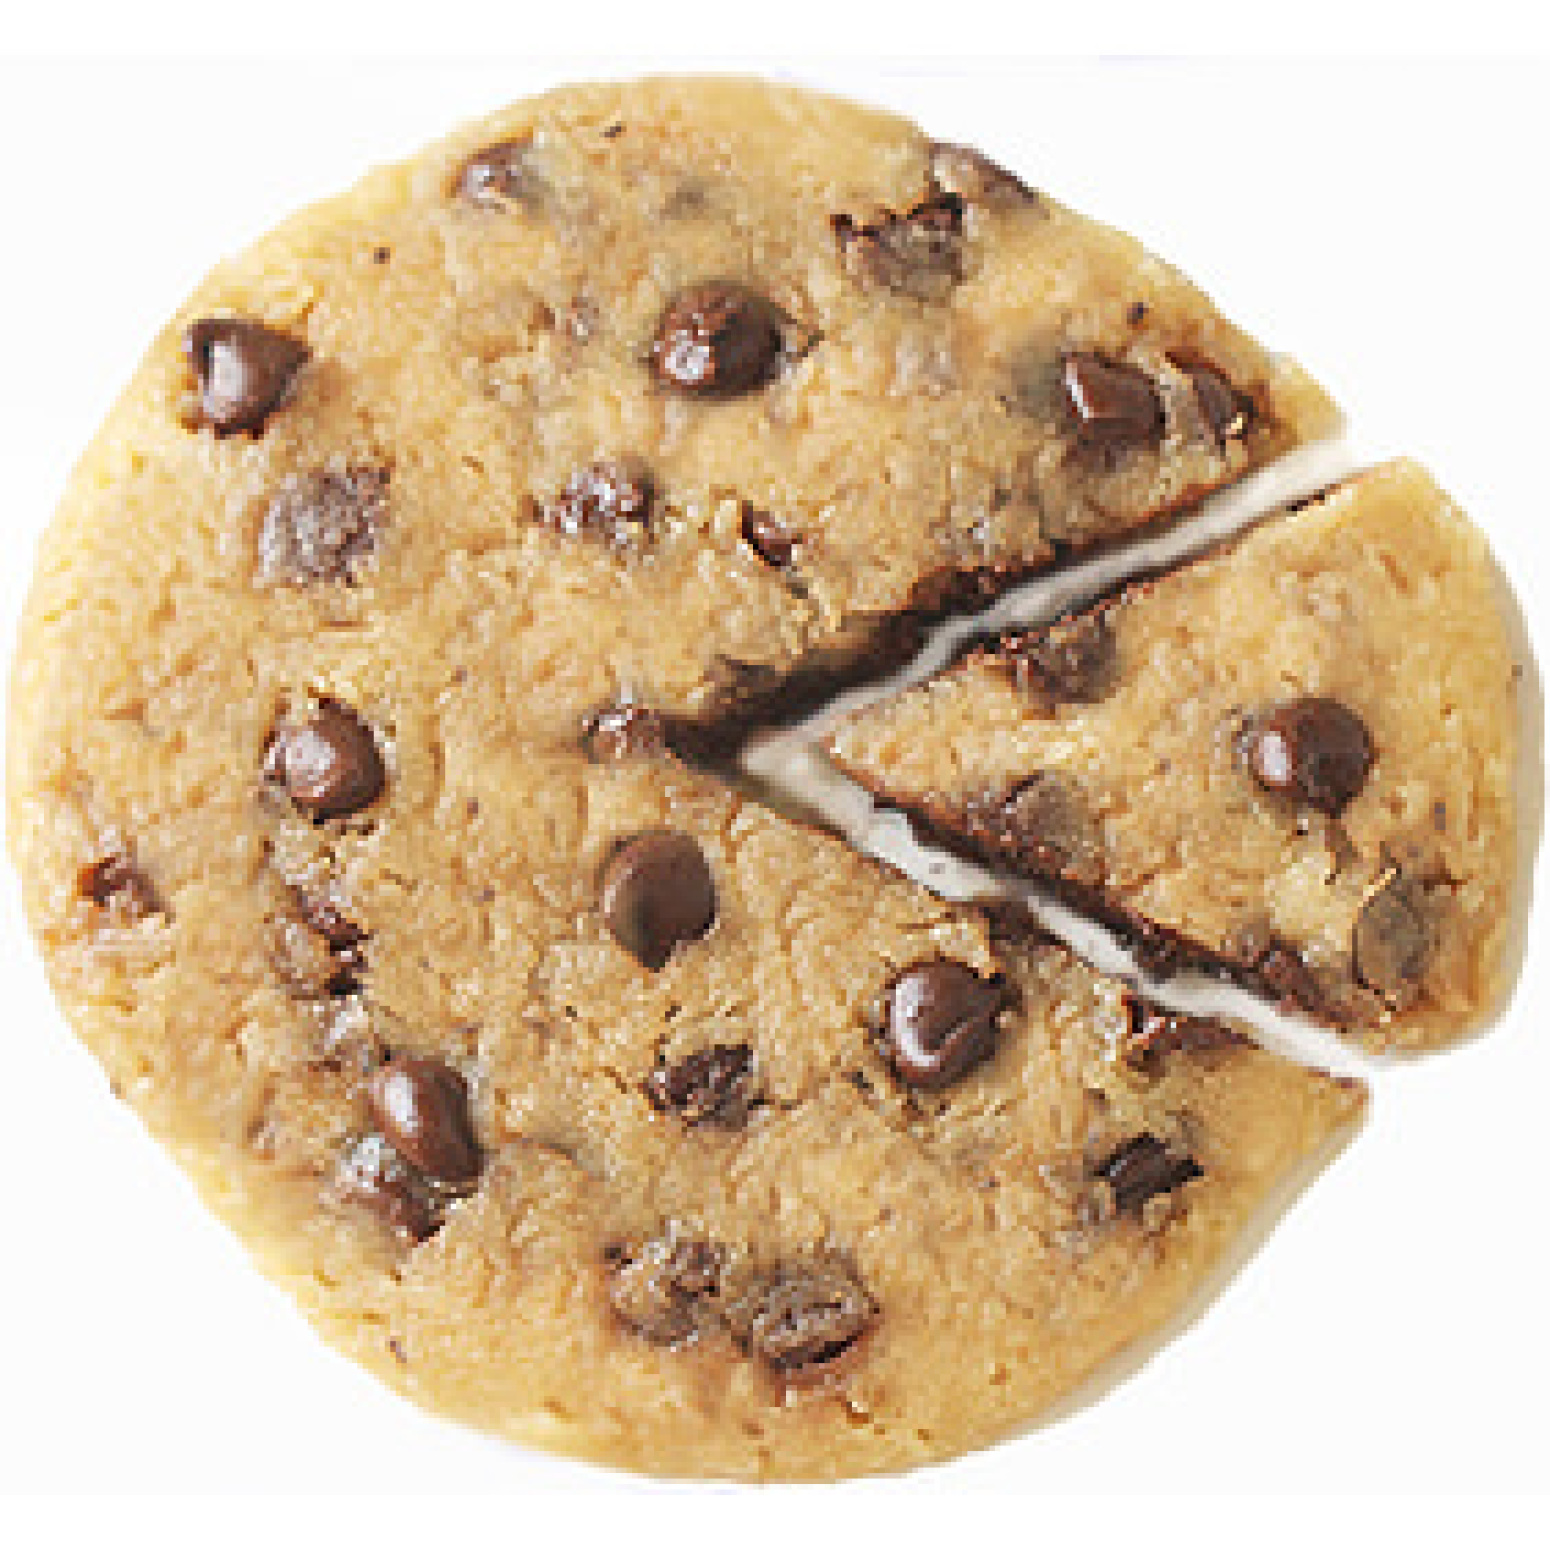 Apr 08, · 1. Beat butter and sugar until creamy, add egg and mix well. 2. Sift A in 1. and mix well. Add B and mix well again. 3. Drop 5 cookies (at a time) by teaspoon in a ring onto waxed paper on microwave oven glass tray.4/5.